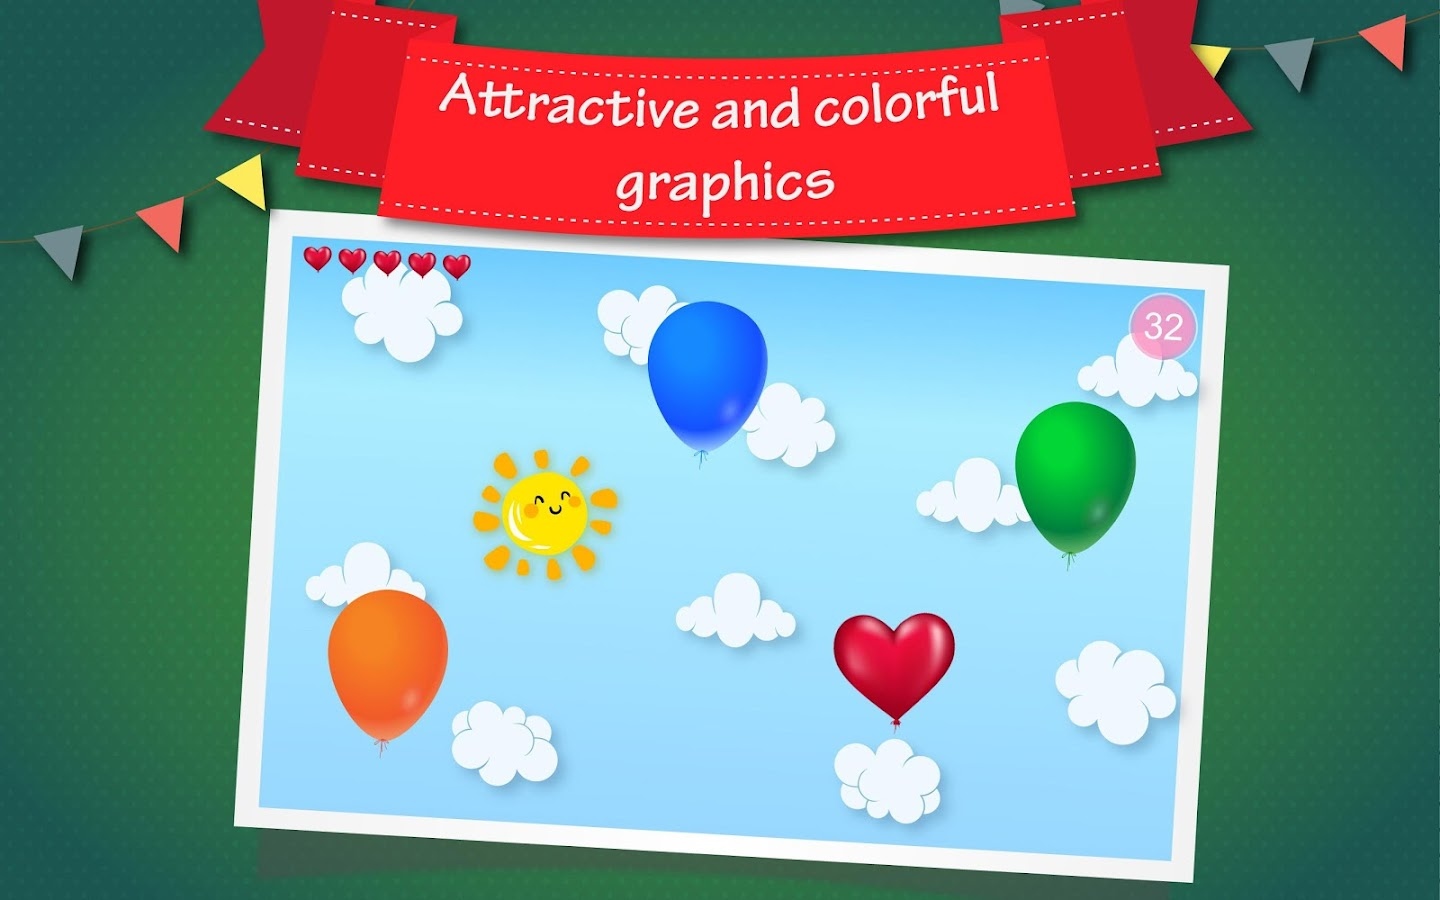 Balloon pop android apps on google play for Free balloon games